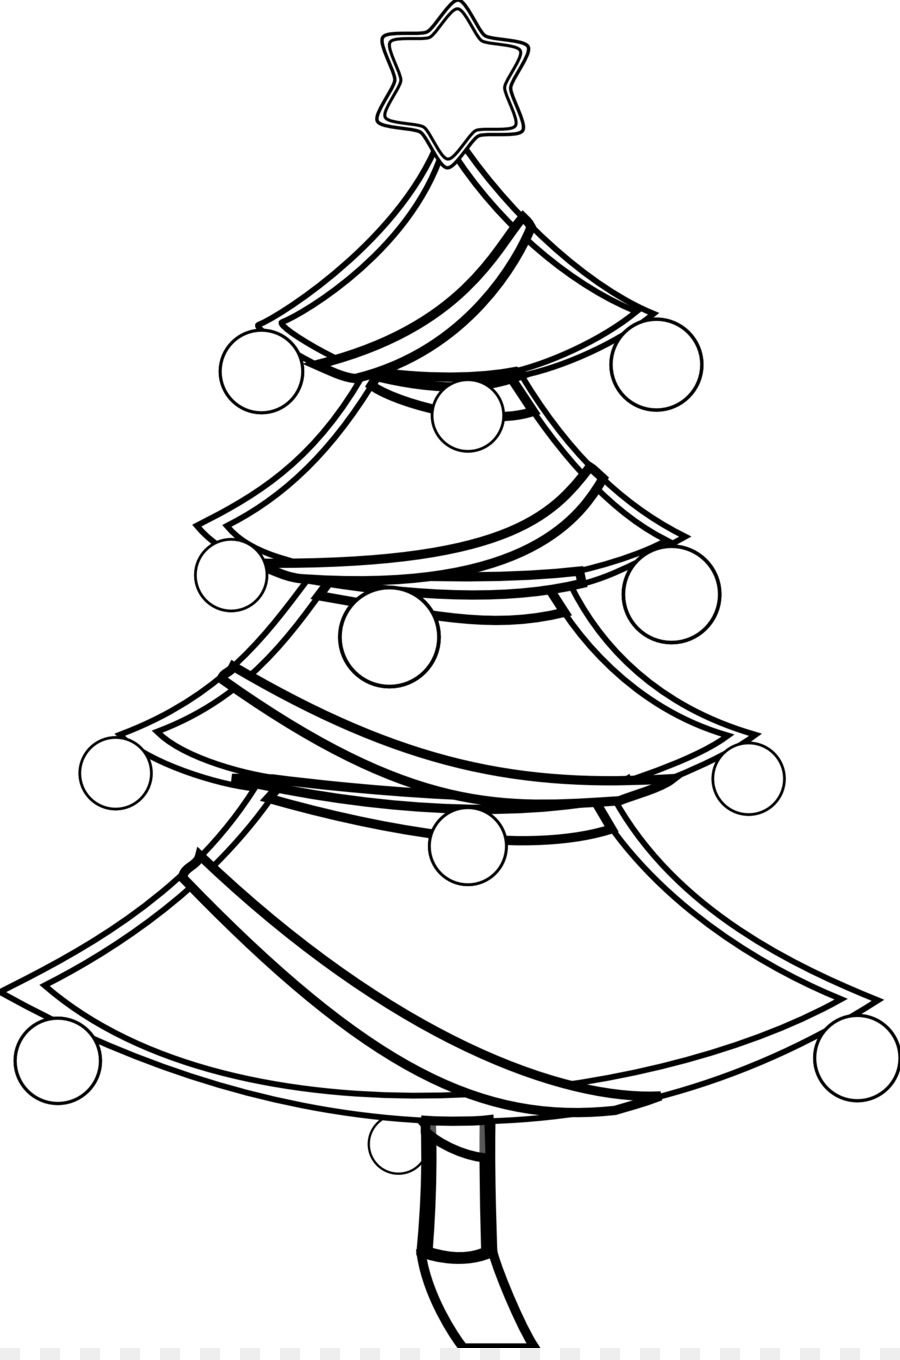 elsa coloring pages for kids kristoff elsa and anna coloring pages christmas tree line drawing